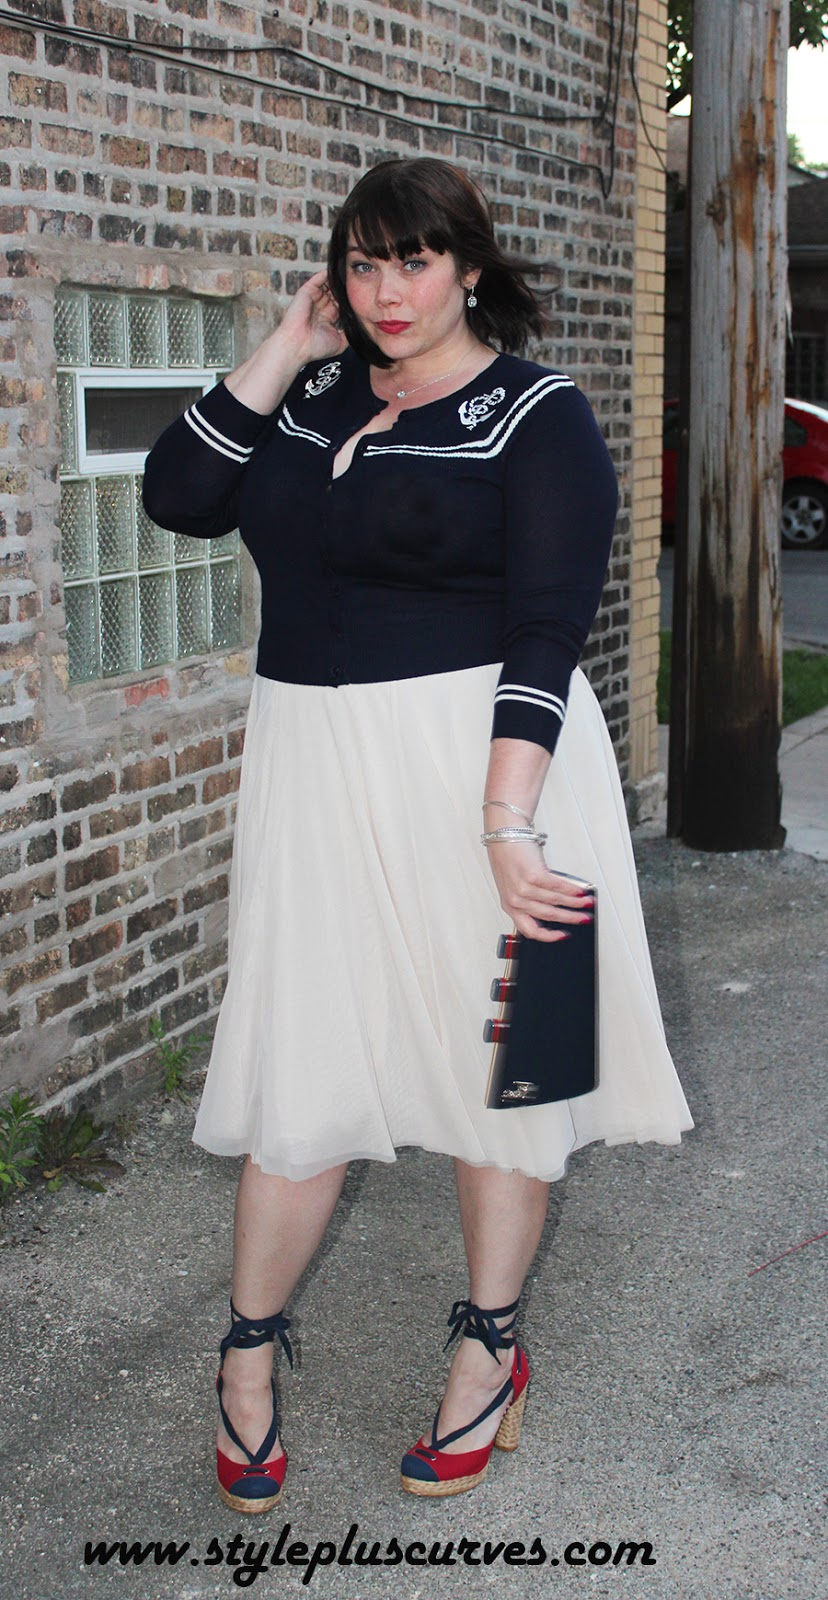 Amber from Style Plus Curves in Plus Size Vintage Cardigan from Voodoo Vixen